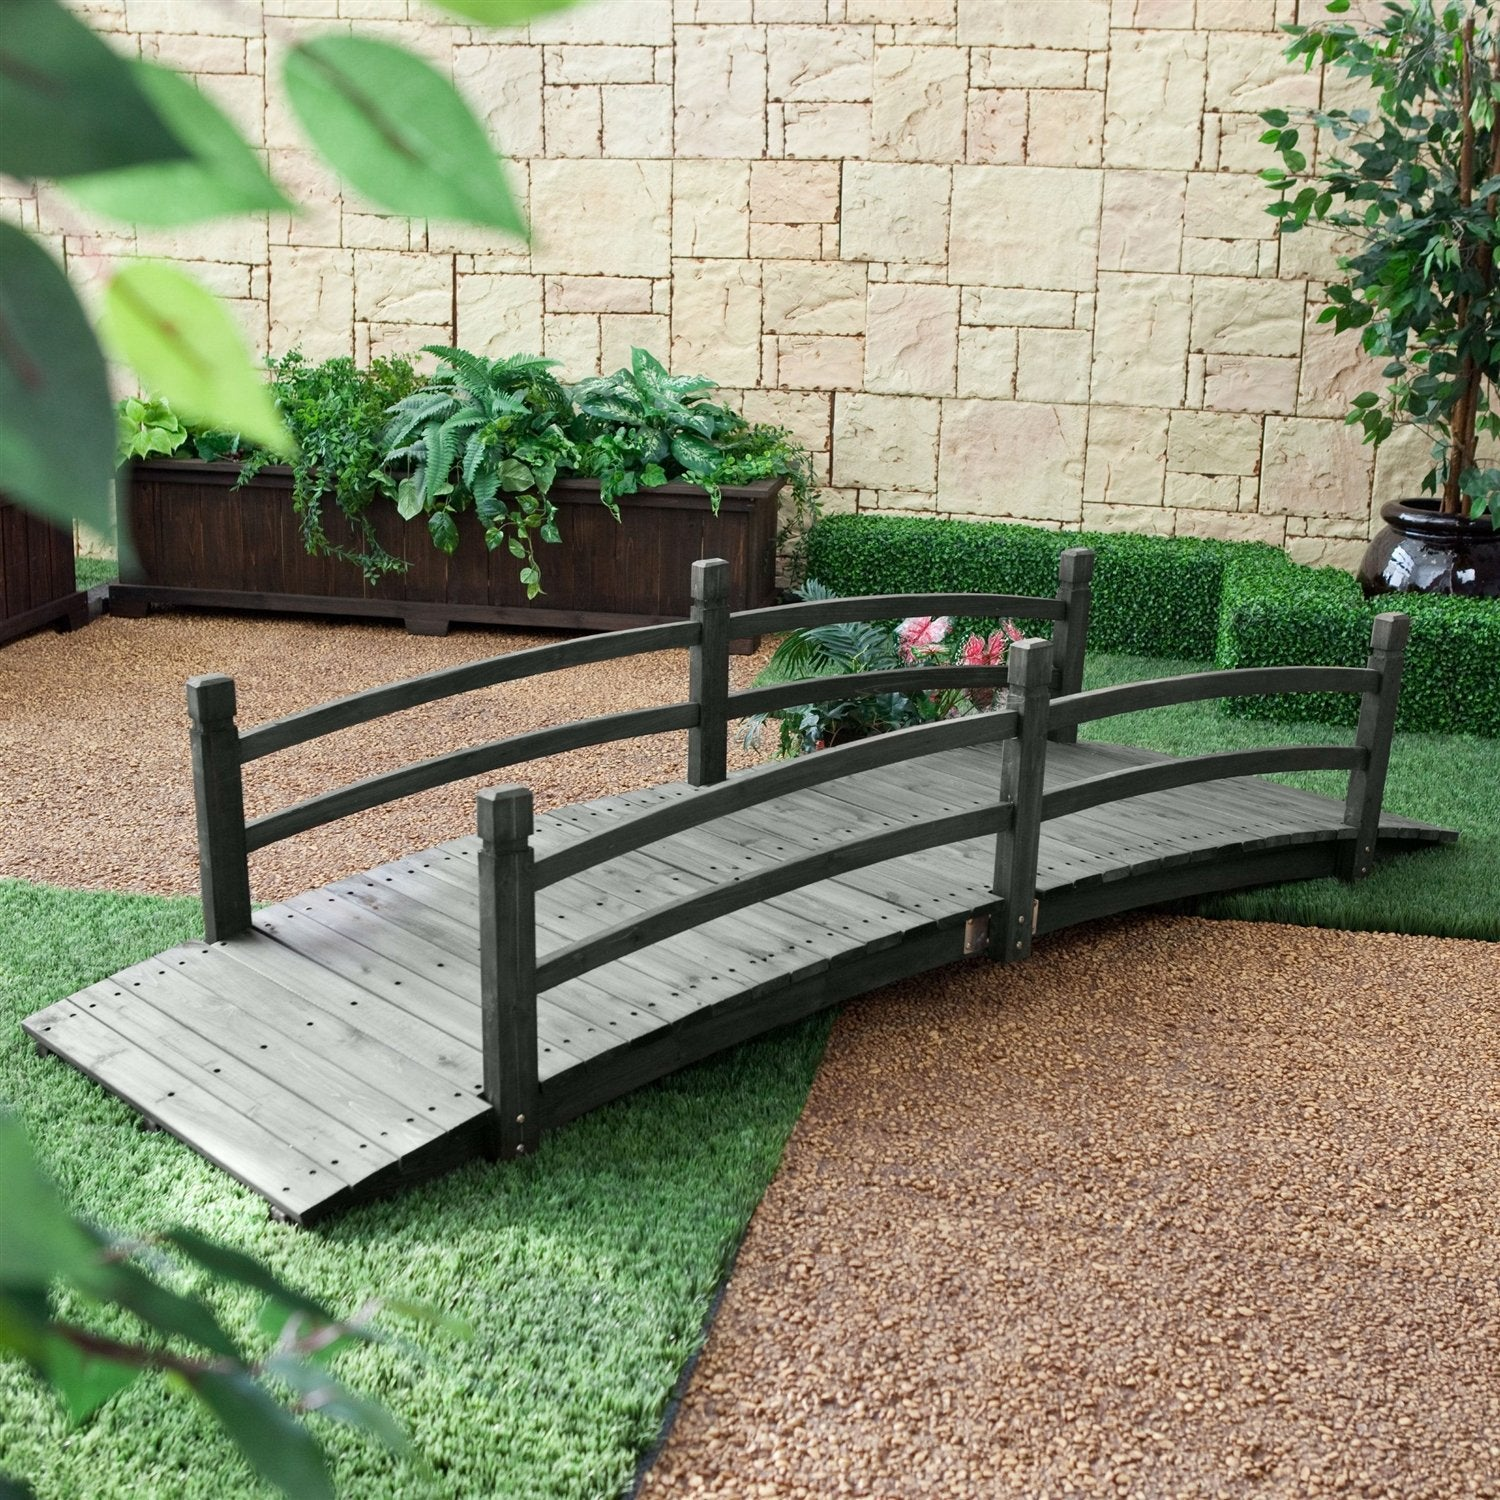 8-Ft Outdoor Garden Bridge with Handrails in Weather Resistant Dark Wood Stain